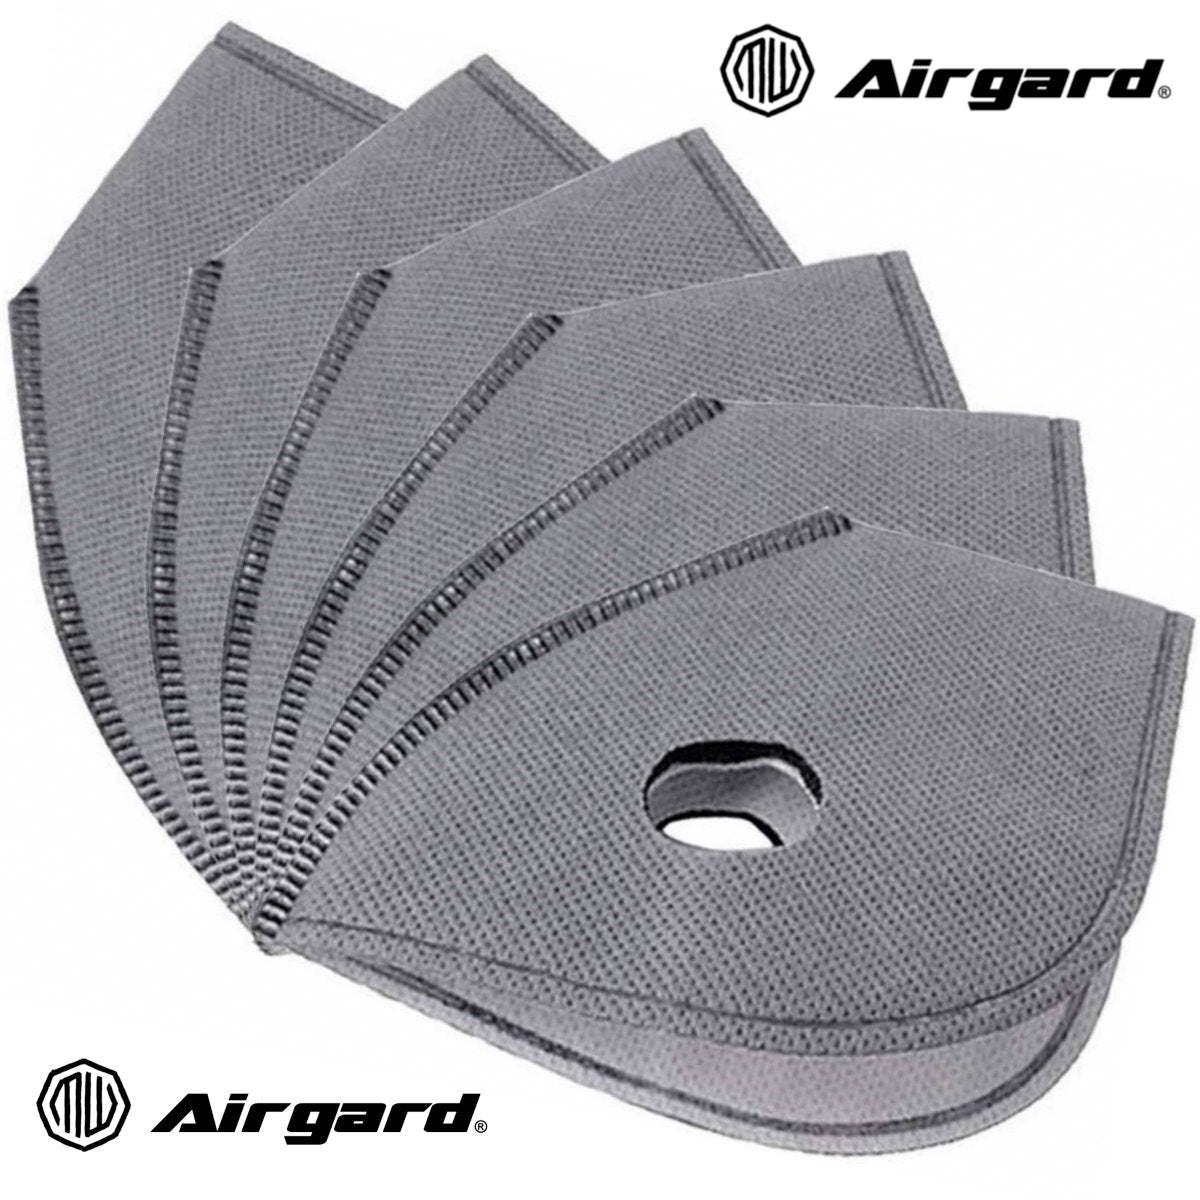 Airgard Replacement Filter PM2.5 (5 Pack)